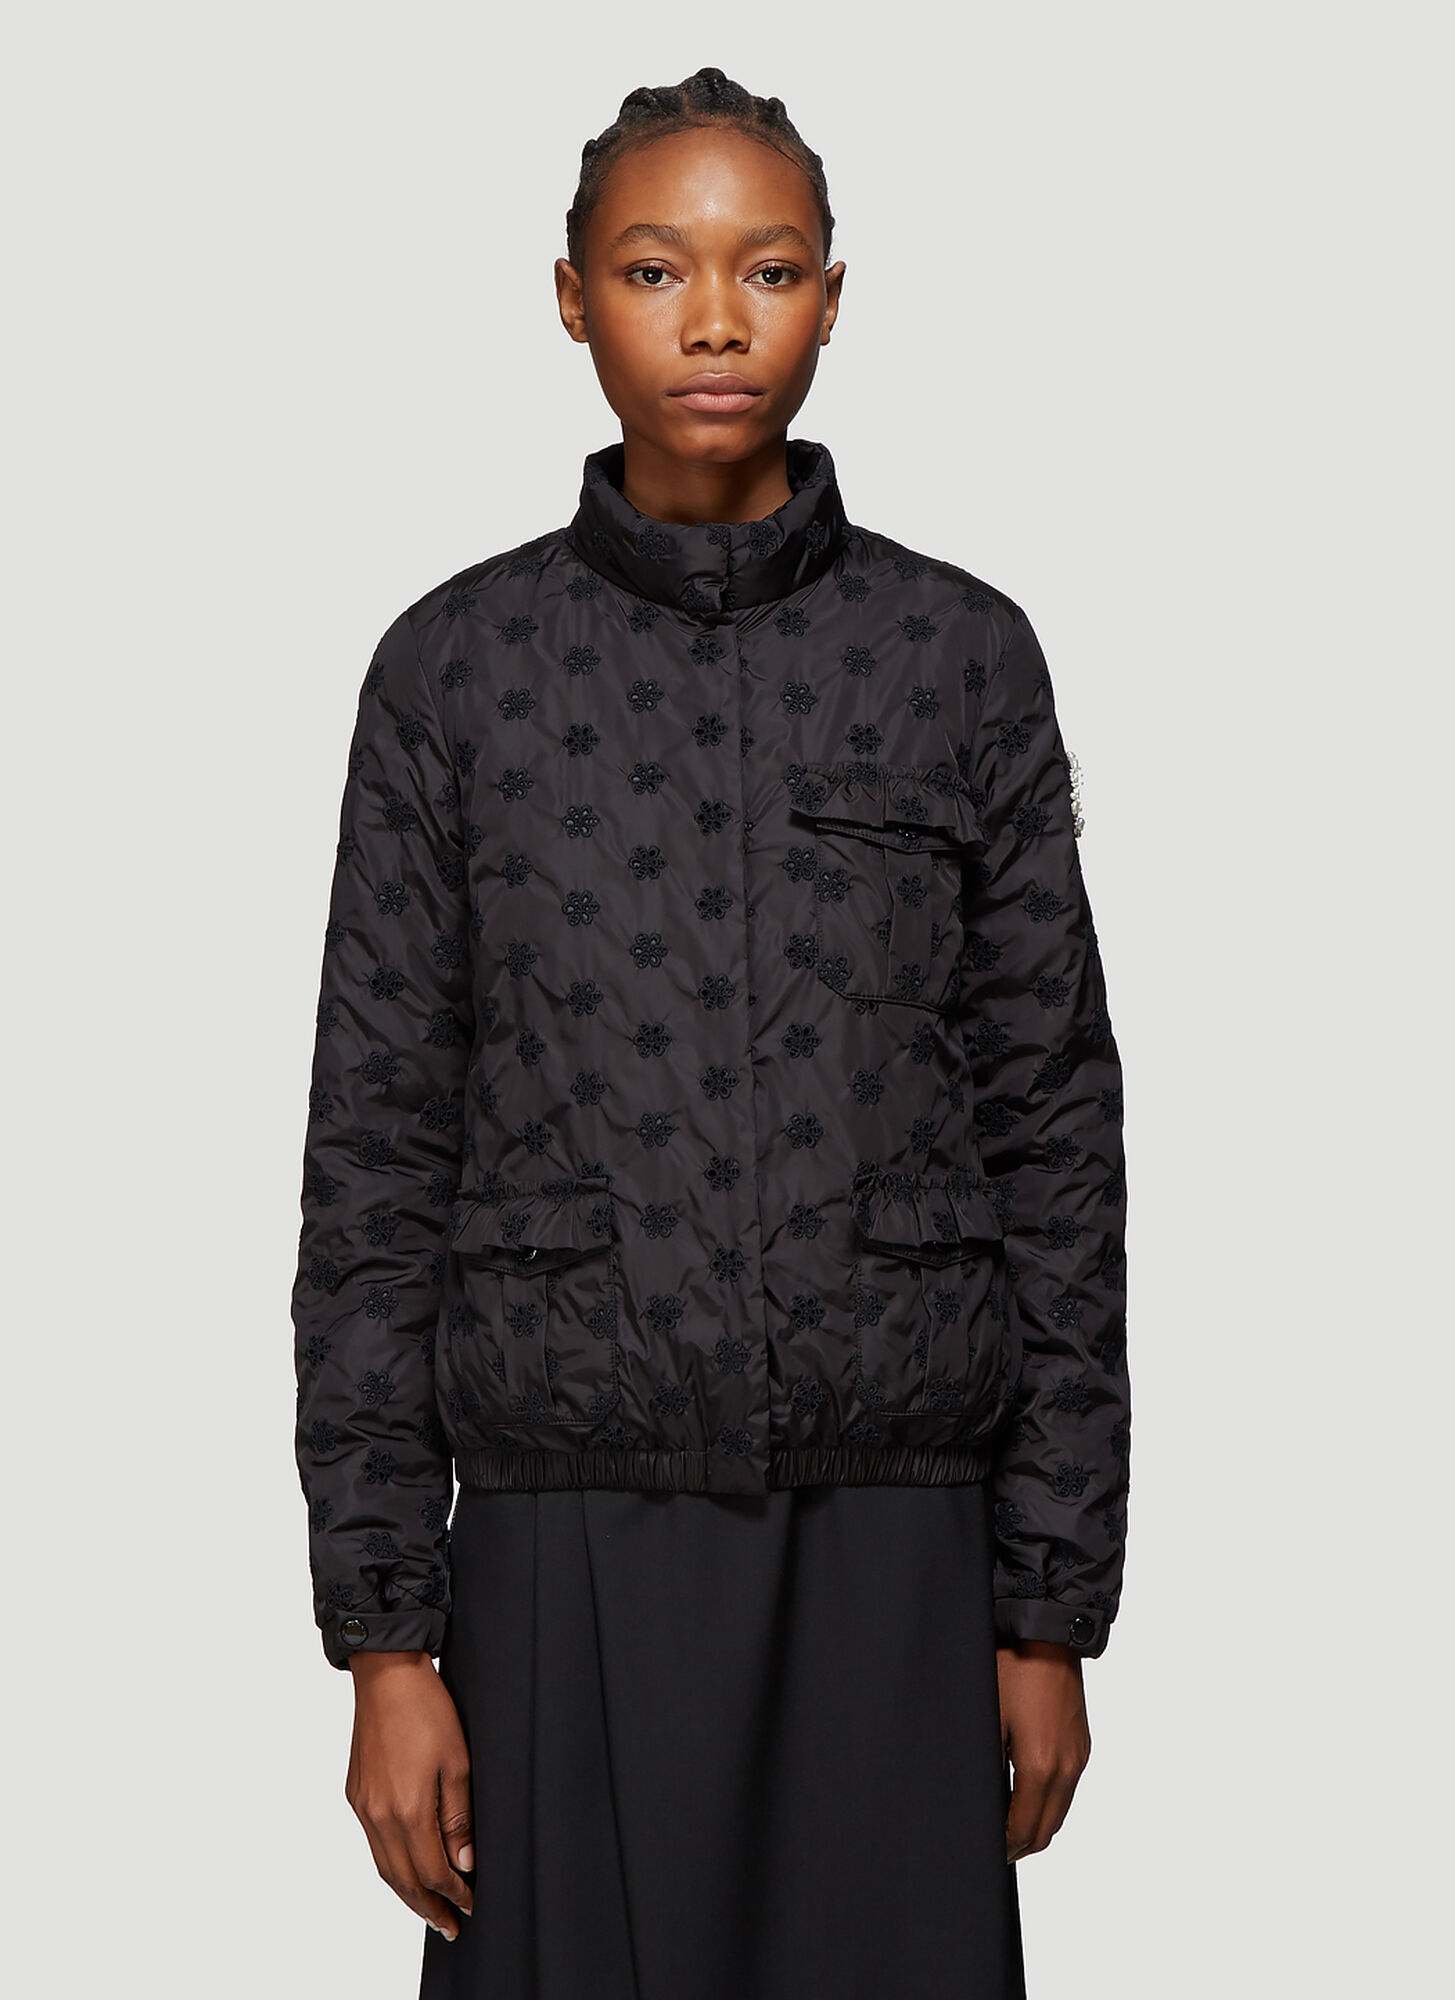 4 Moncler Simone Rocha Hilary Broderie Anglaise Jacket in Black